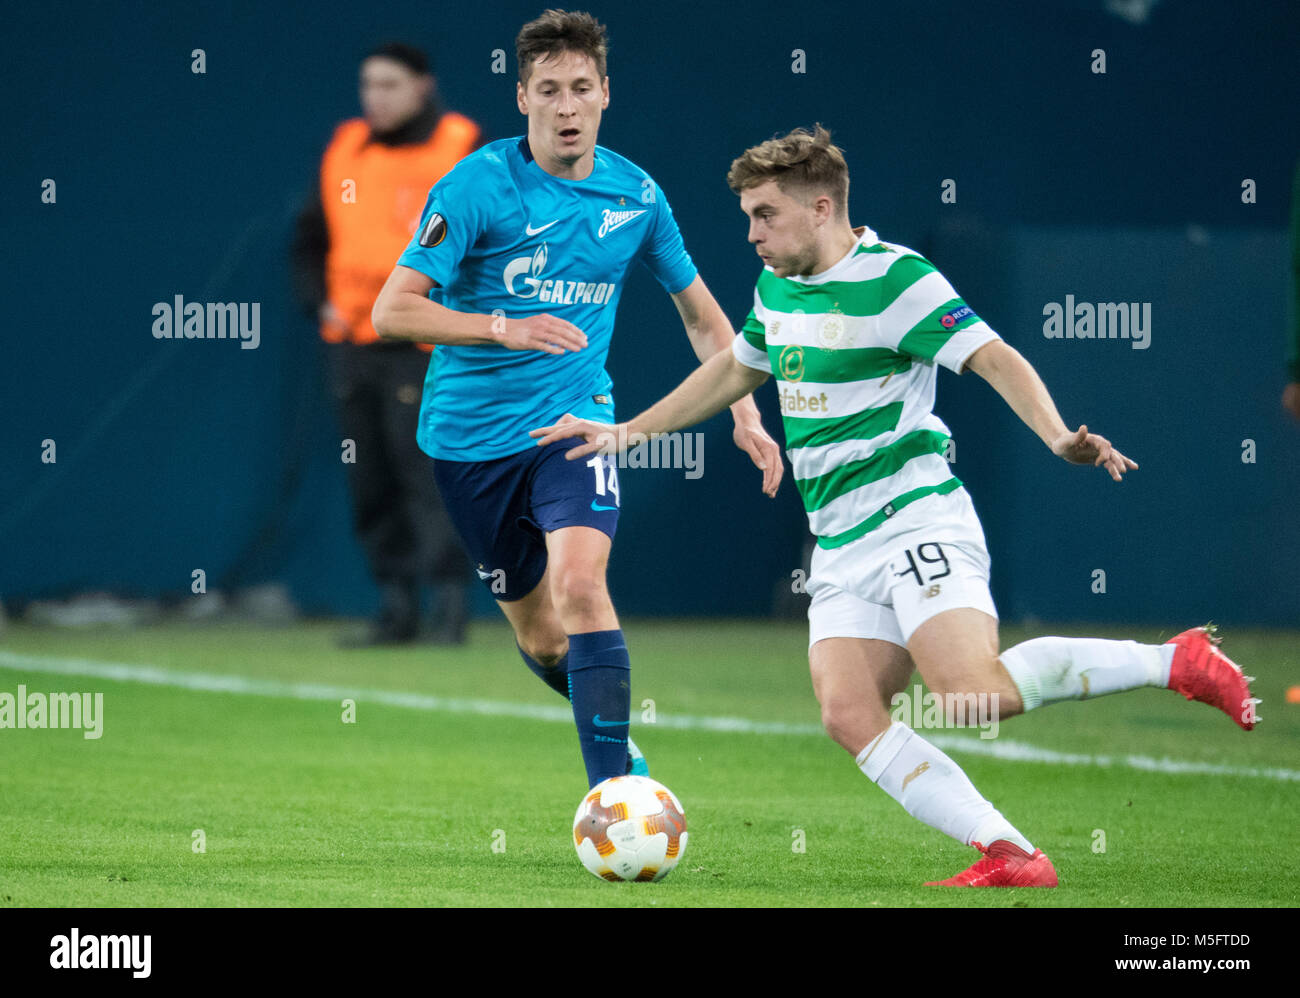 ST PETERSBURG, RUSSIA – FEBRUARY 22, 2018. UEFA Europa League, Round of 32: Zenit St Petersburg 3 - 0 Celtic F.C. - Stock Image